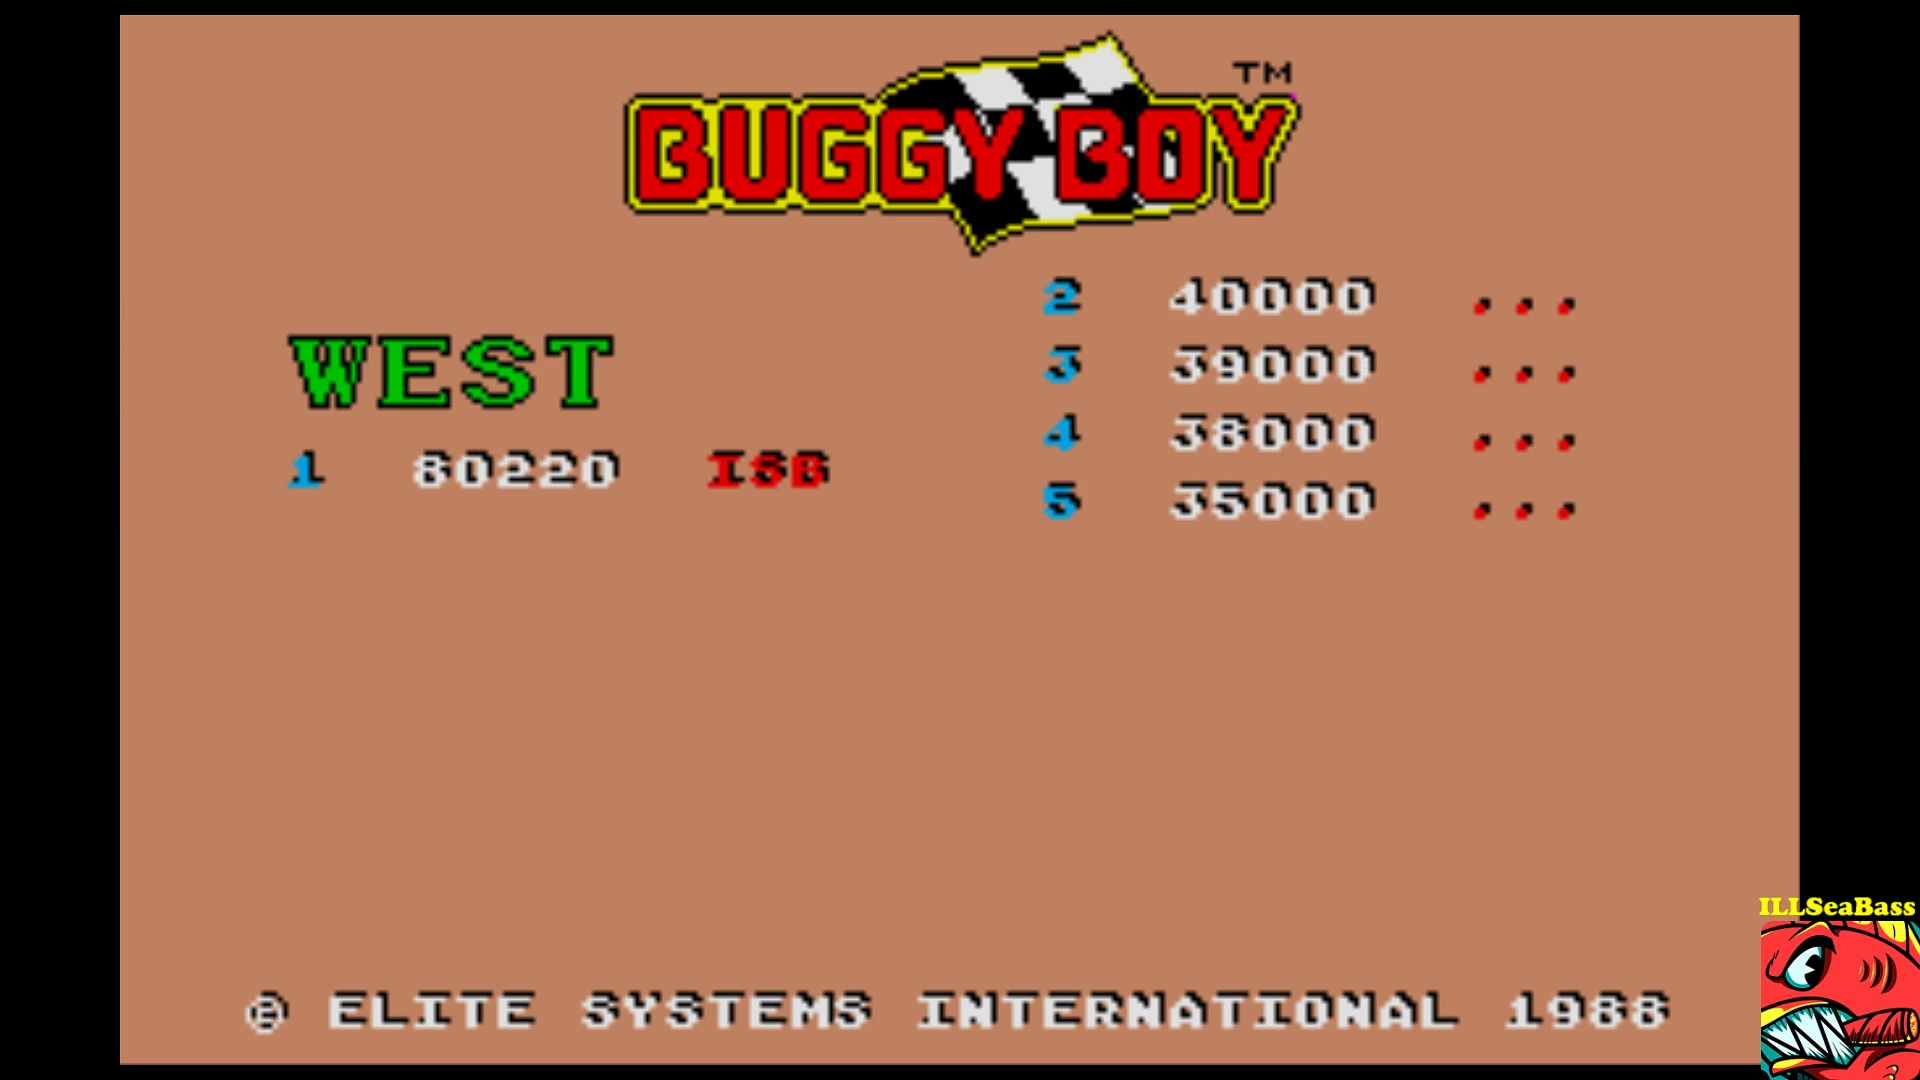 ILLSeaBass: Buggy Boy [West] (Atari ST Emulated) 80,220 points on 2017-10-23 22:23:02